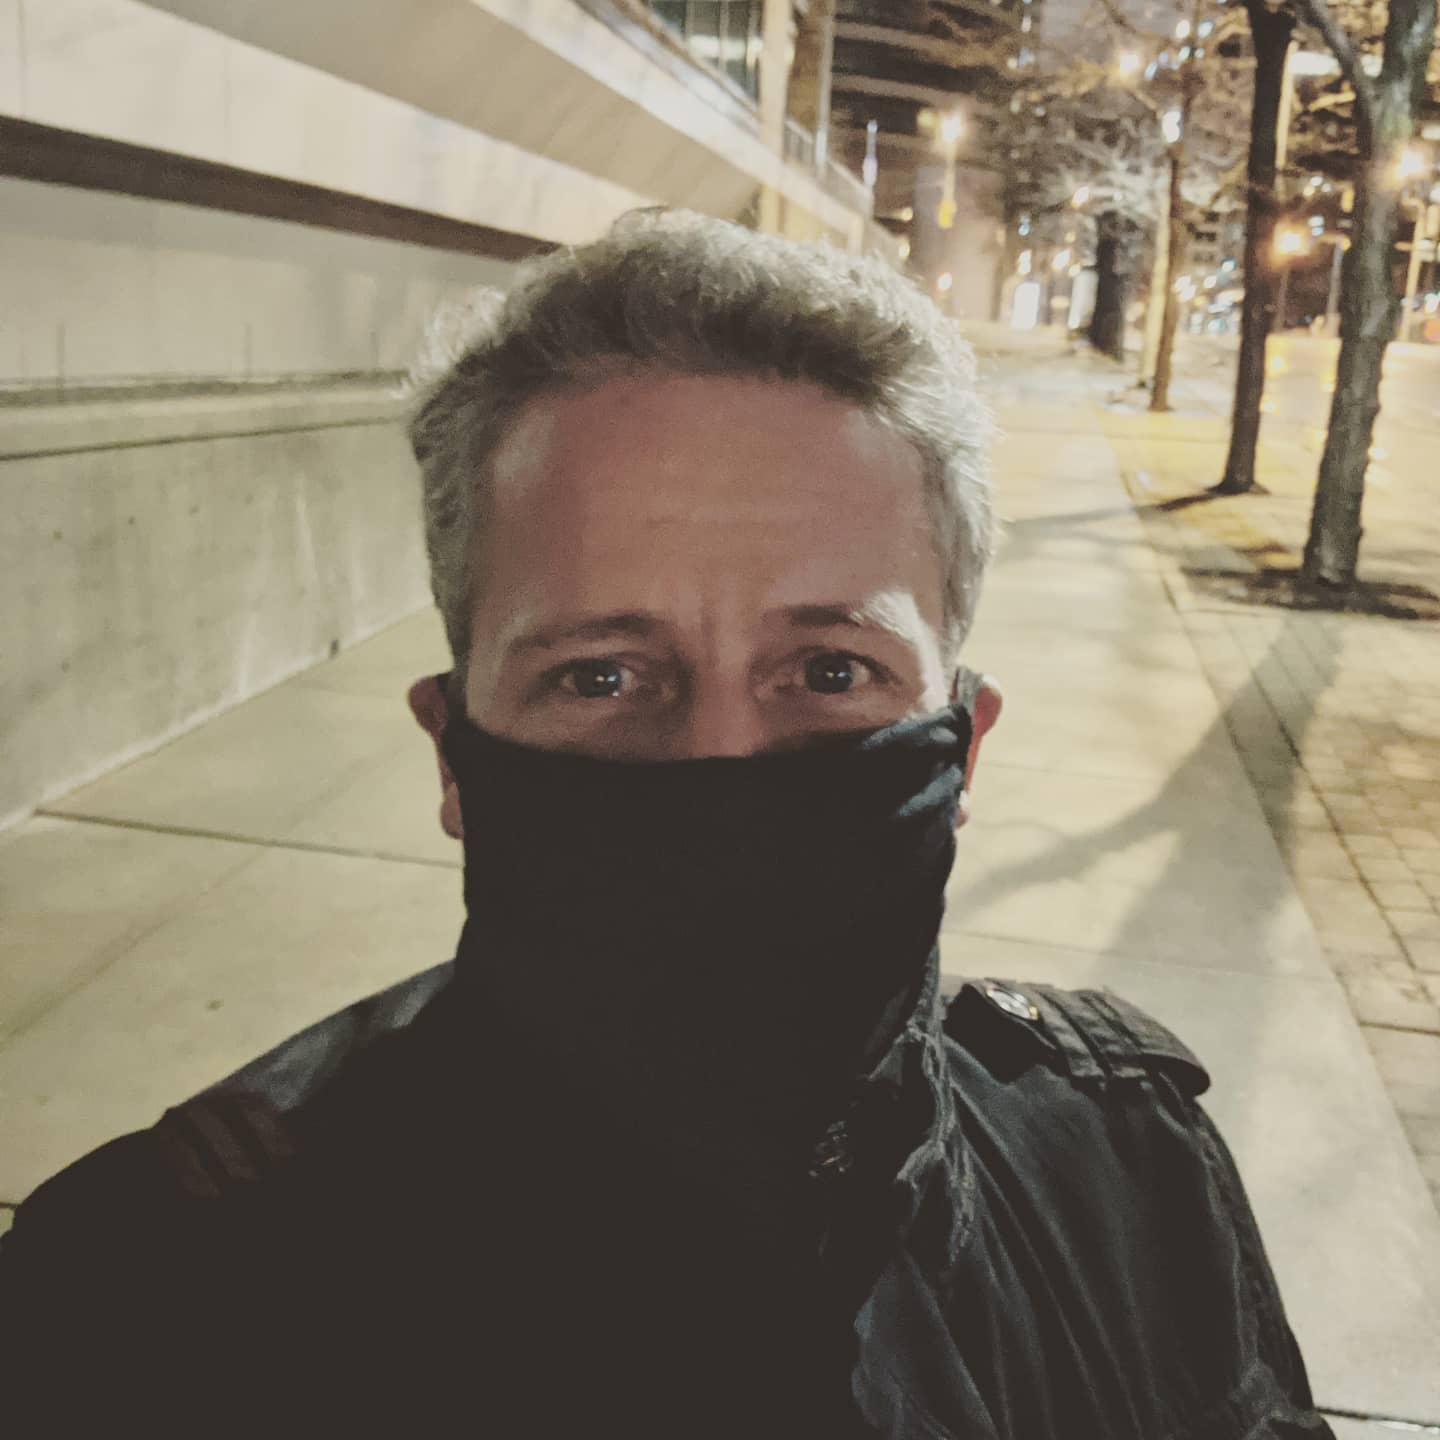 I suspect we will hear far less complaining about masks as we head into winter and people start to realize that masks keep your face warm! Mmmmm, #toasty #wearthedamnmask #wearthemask